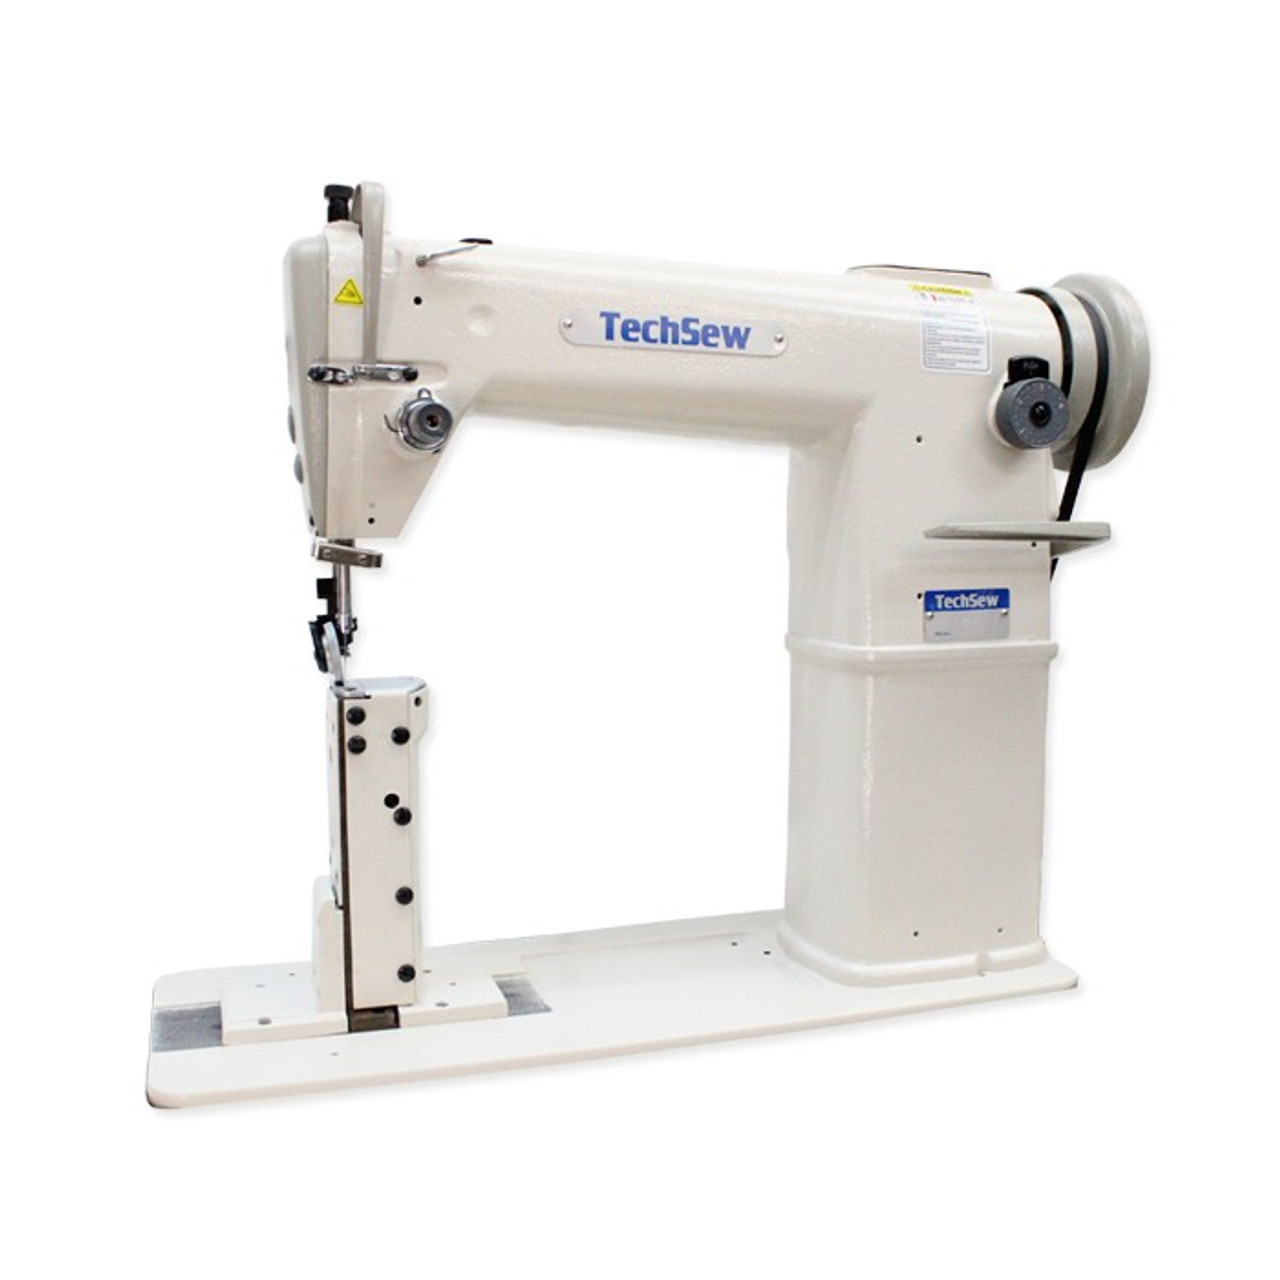 Techsew 40 Post Bed Roller Foot Industrial Sewing Machine Stecksstore Adorable Post Bed Industrial Sewing Machine